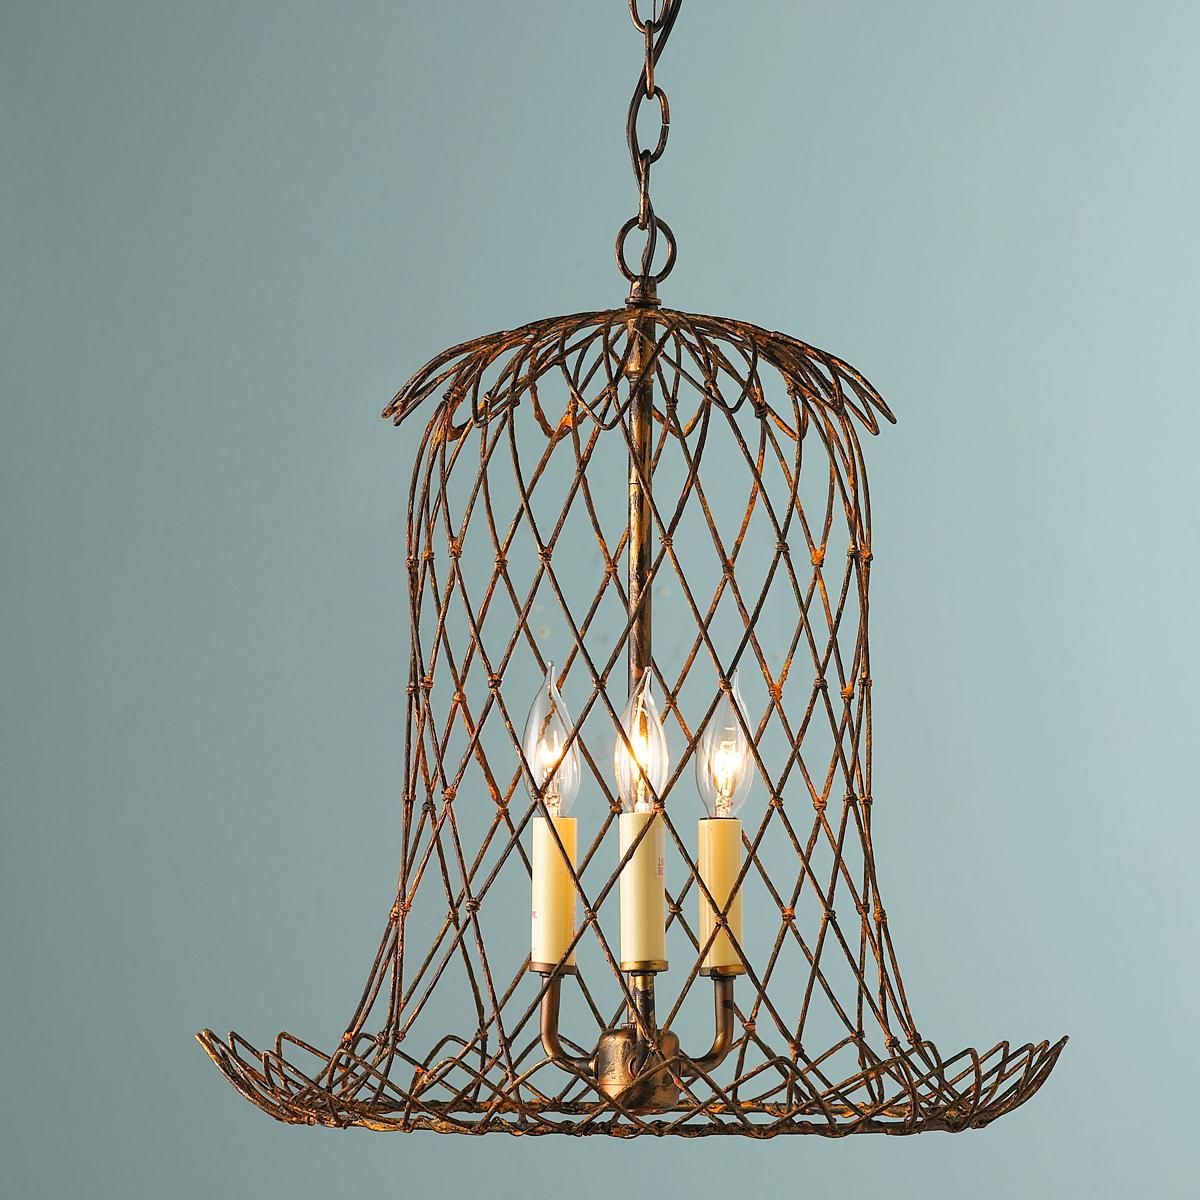 Tulip Wire Basket Lantern A Rusty Finish On Heavy Gauge Wire Forms A Lovely Tulip Shape Housing 3 Candle Lights Exclusive To Sha Lanterns Light Glam Lighting